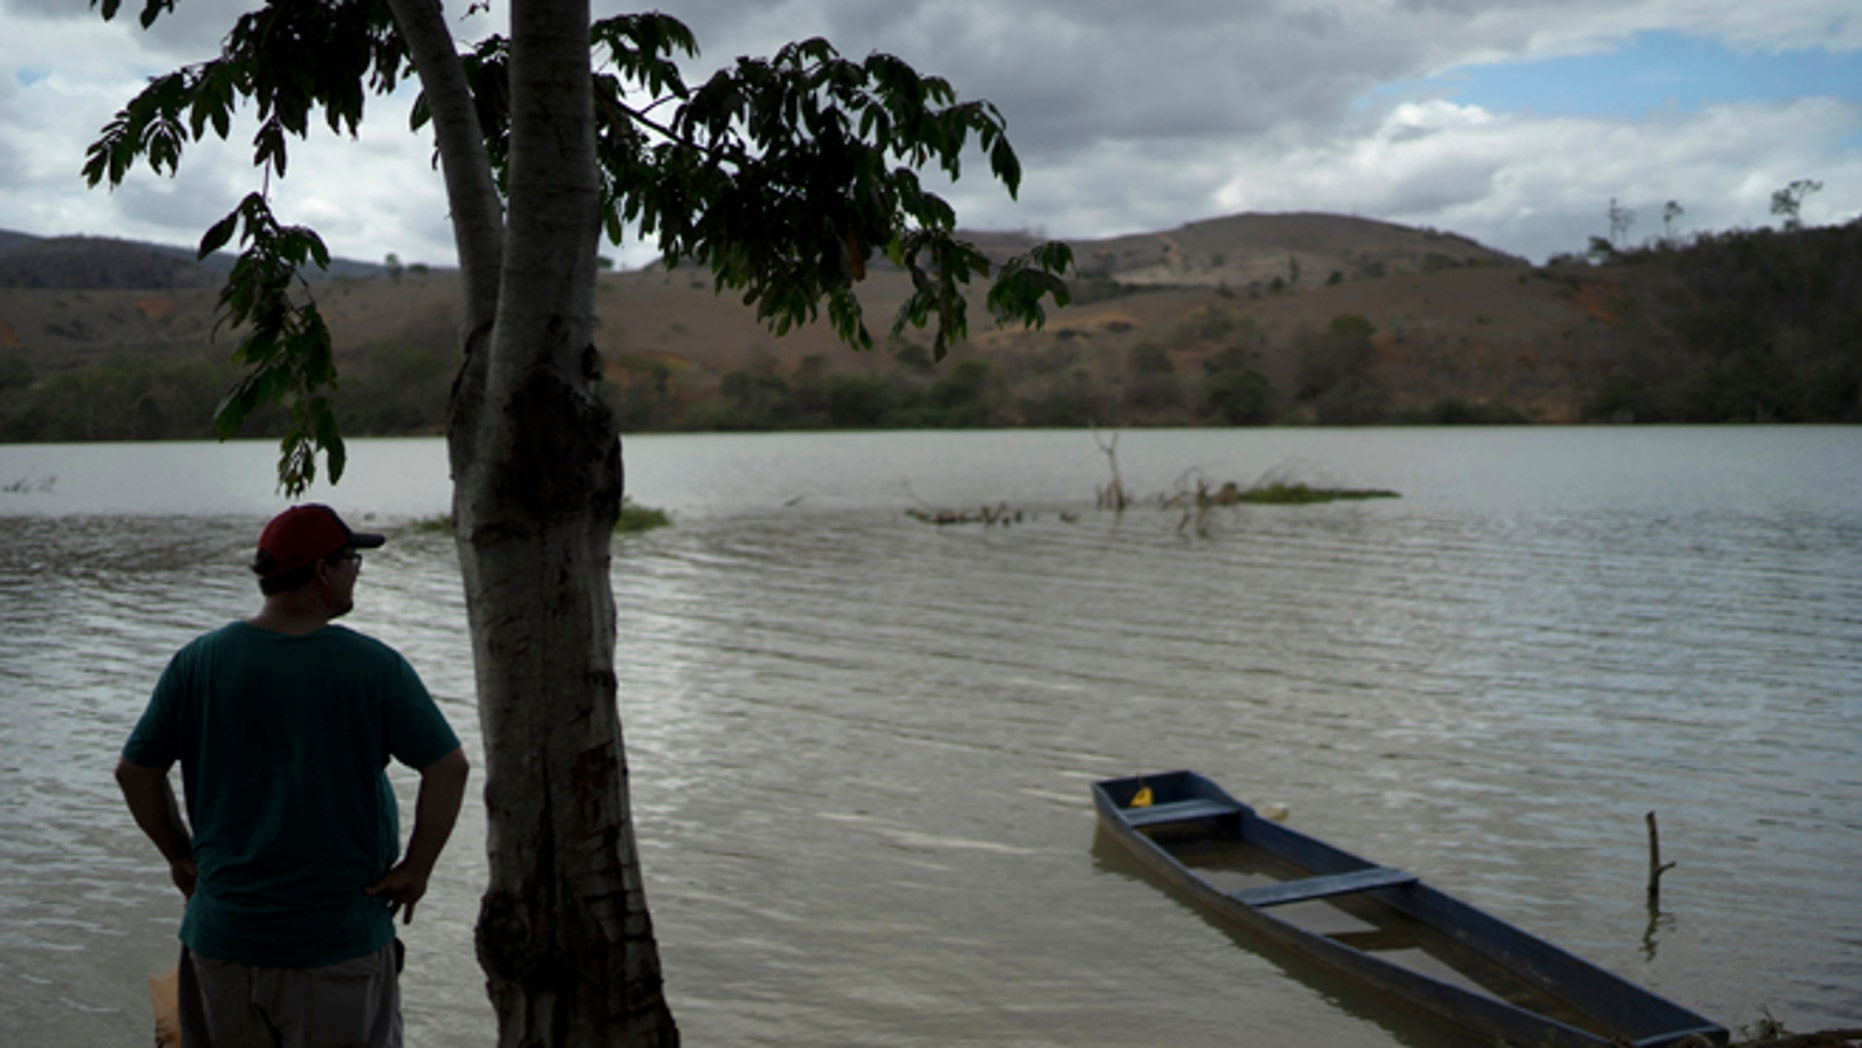 """In this Oct. 11, 2016 photo, fisherman Deucimar Teixeira Lordes stands on the banks of the Doce River, in Mascarenhas, Brazil. The 45-year-old fisherman has doubts that he will fish in the Doce again. """"Fishing here is not good anymore. I would not eat it and I don't have courage to sell it to the people."""" Lordes said. (AP Photo/Leo Correa)"""